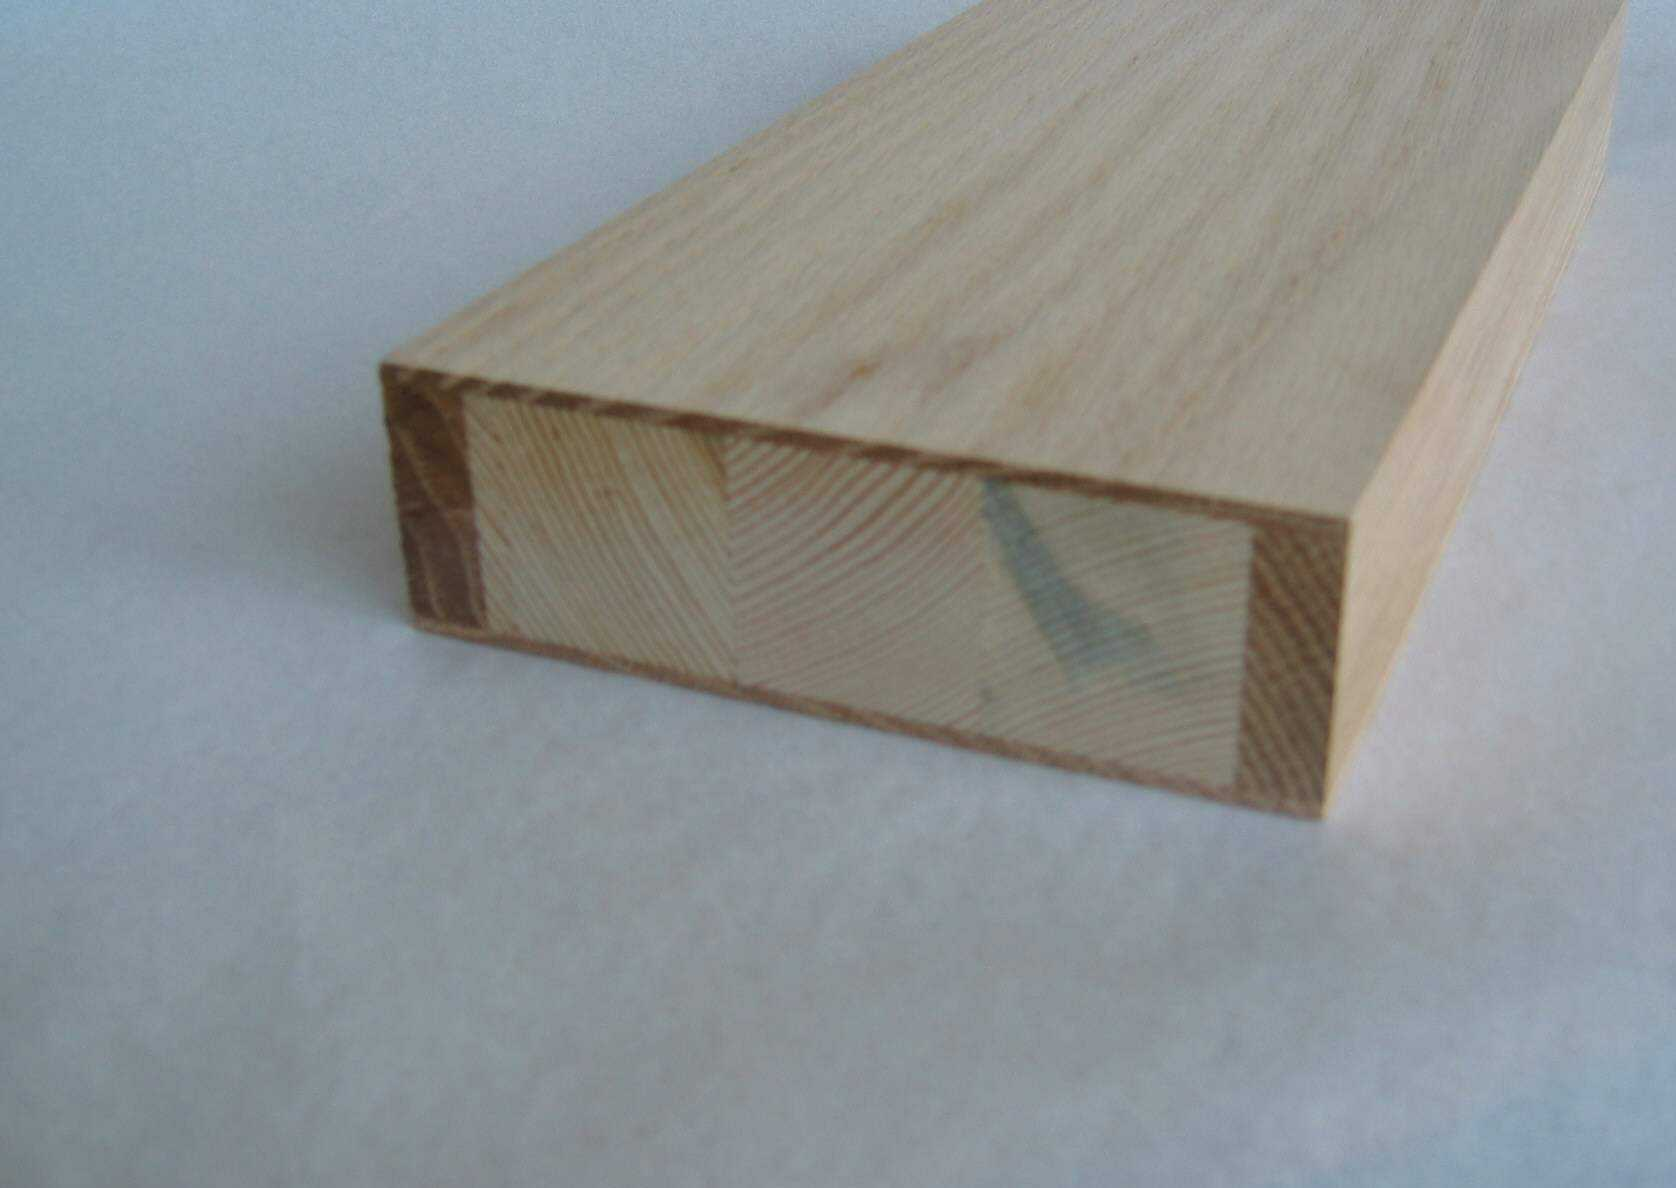 Wli product 1 for Wood stile and rail doors